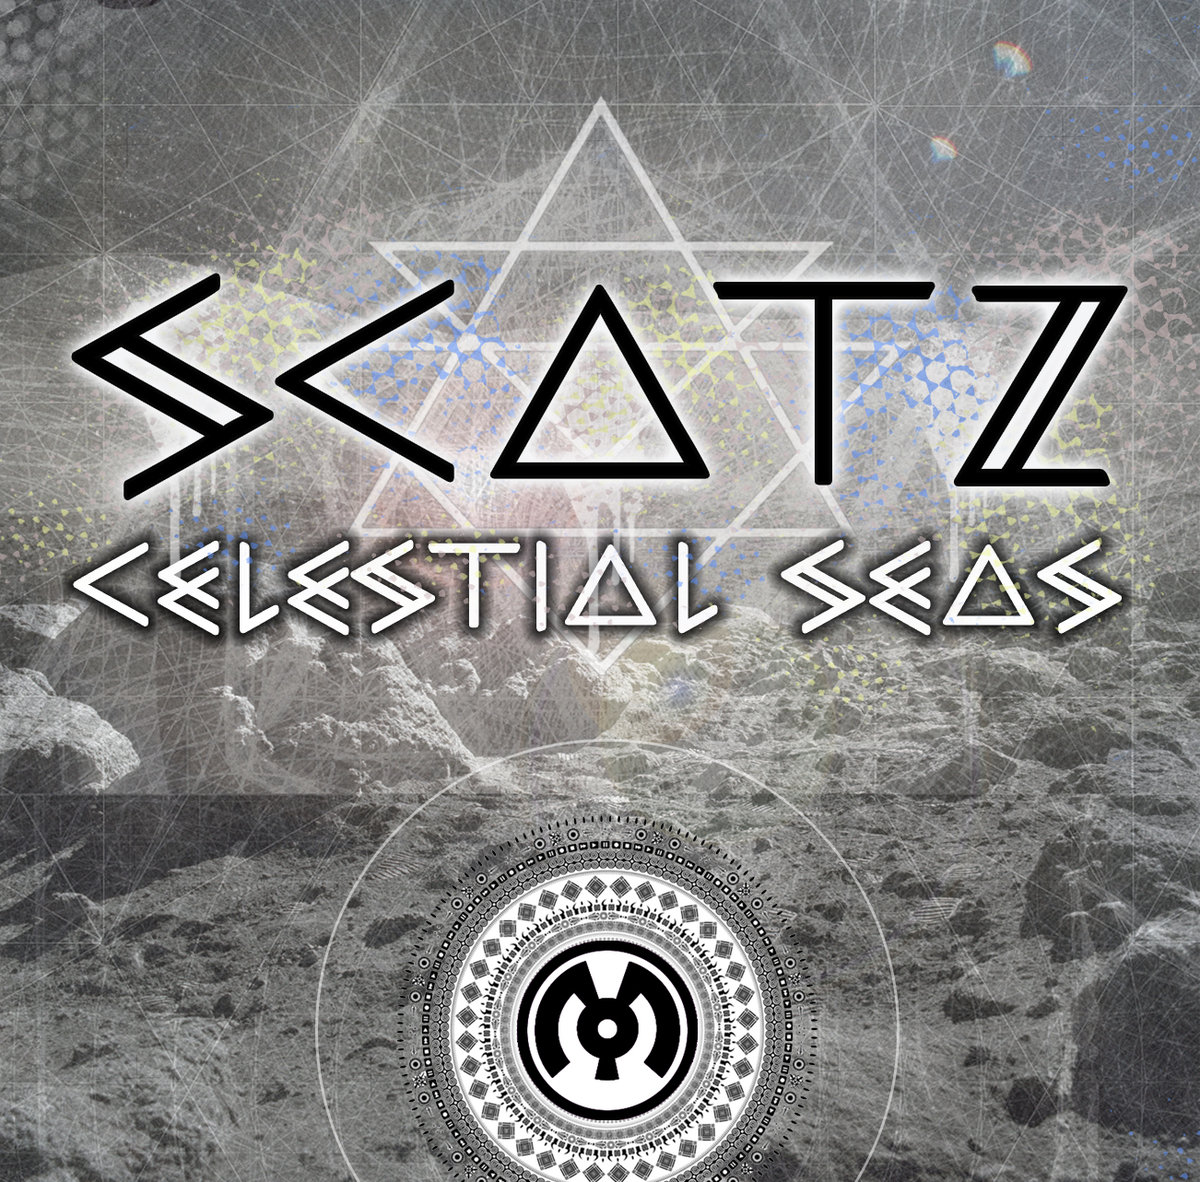 Scatz - New Vision @ 'Celestial Seas' album (electronic, dubstep)